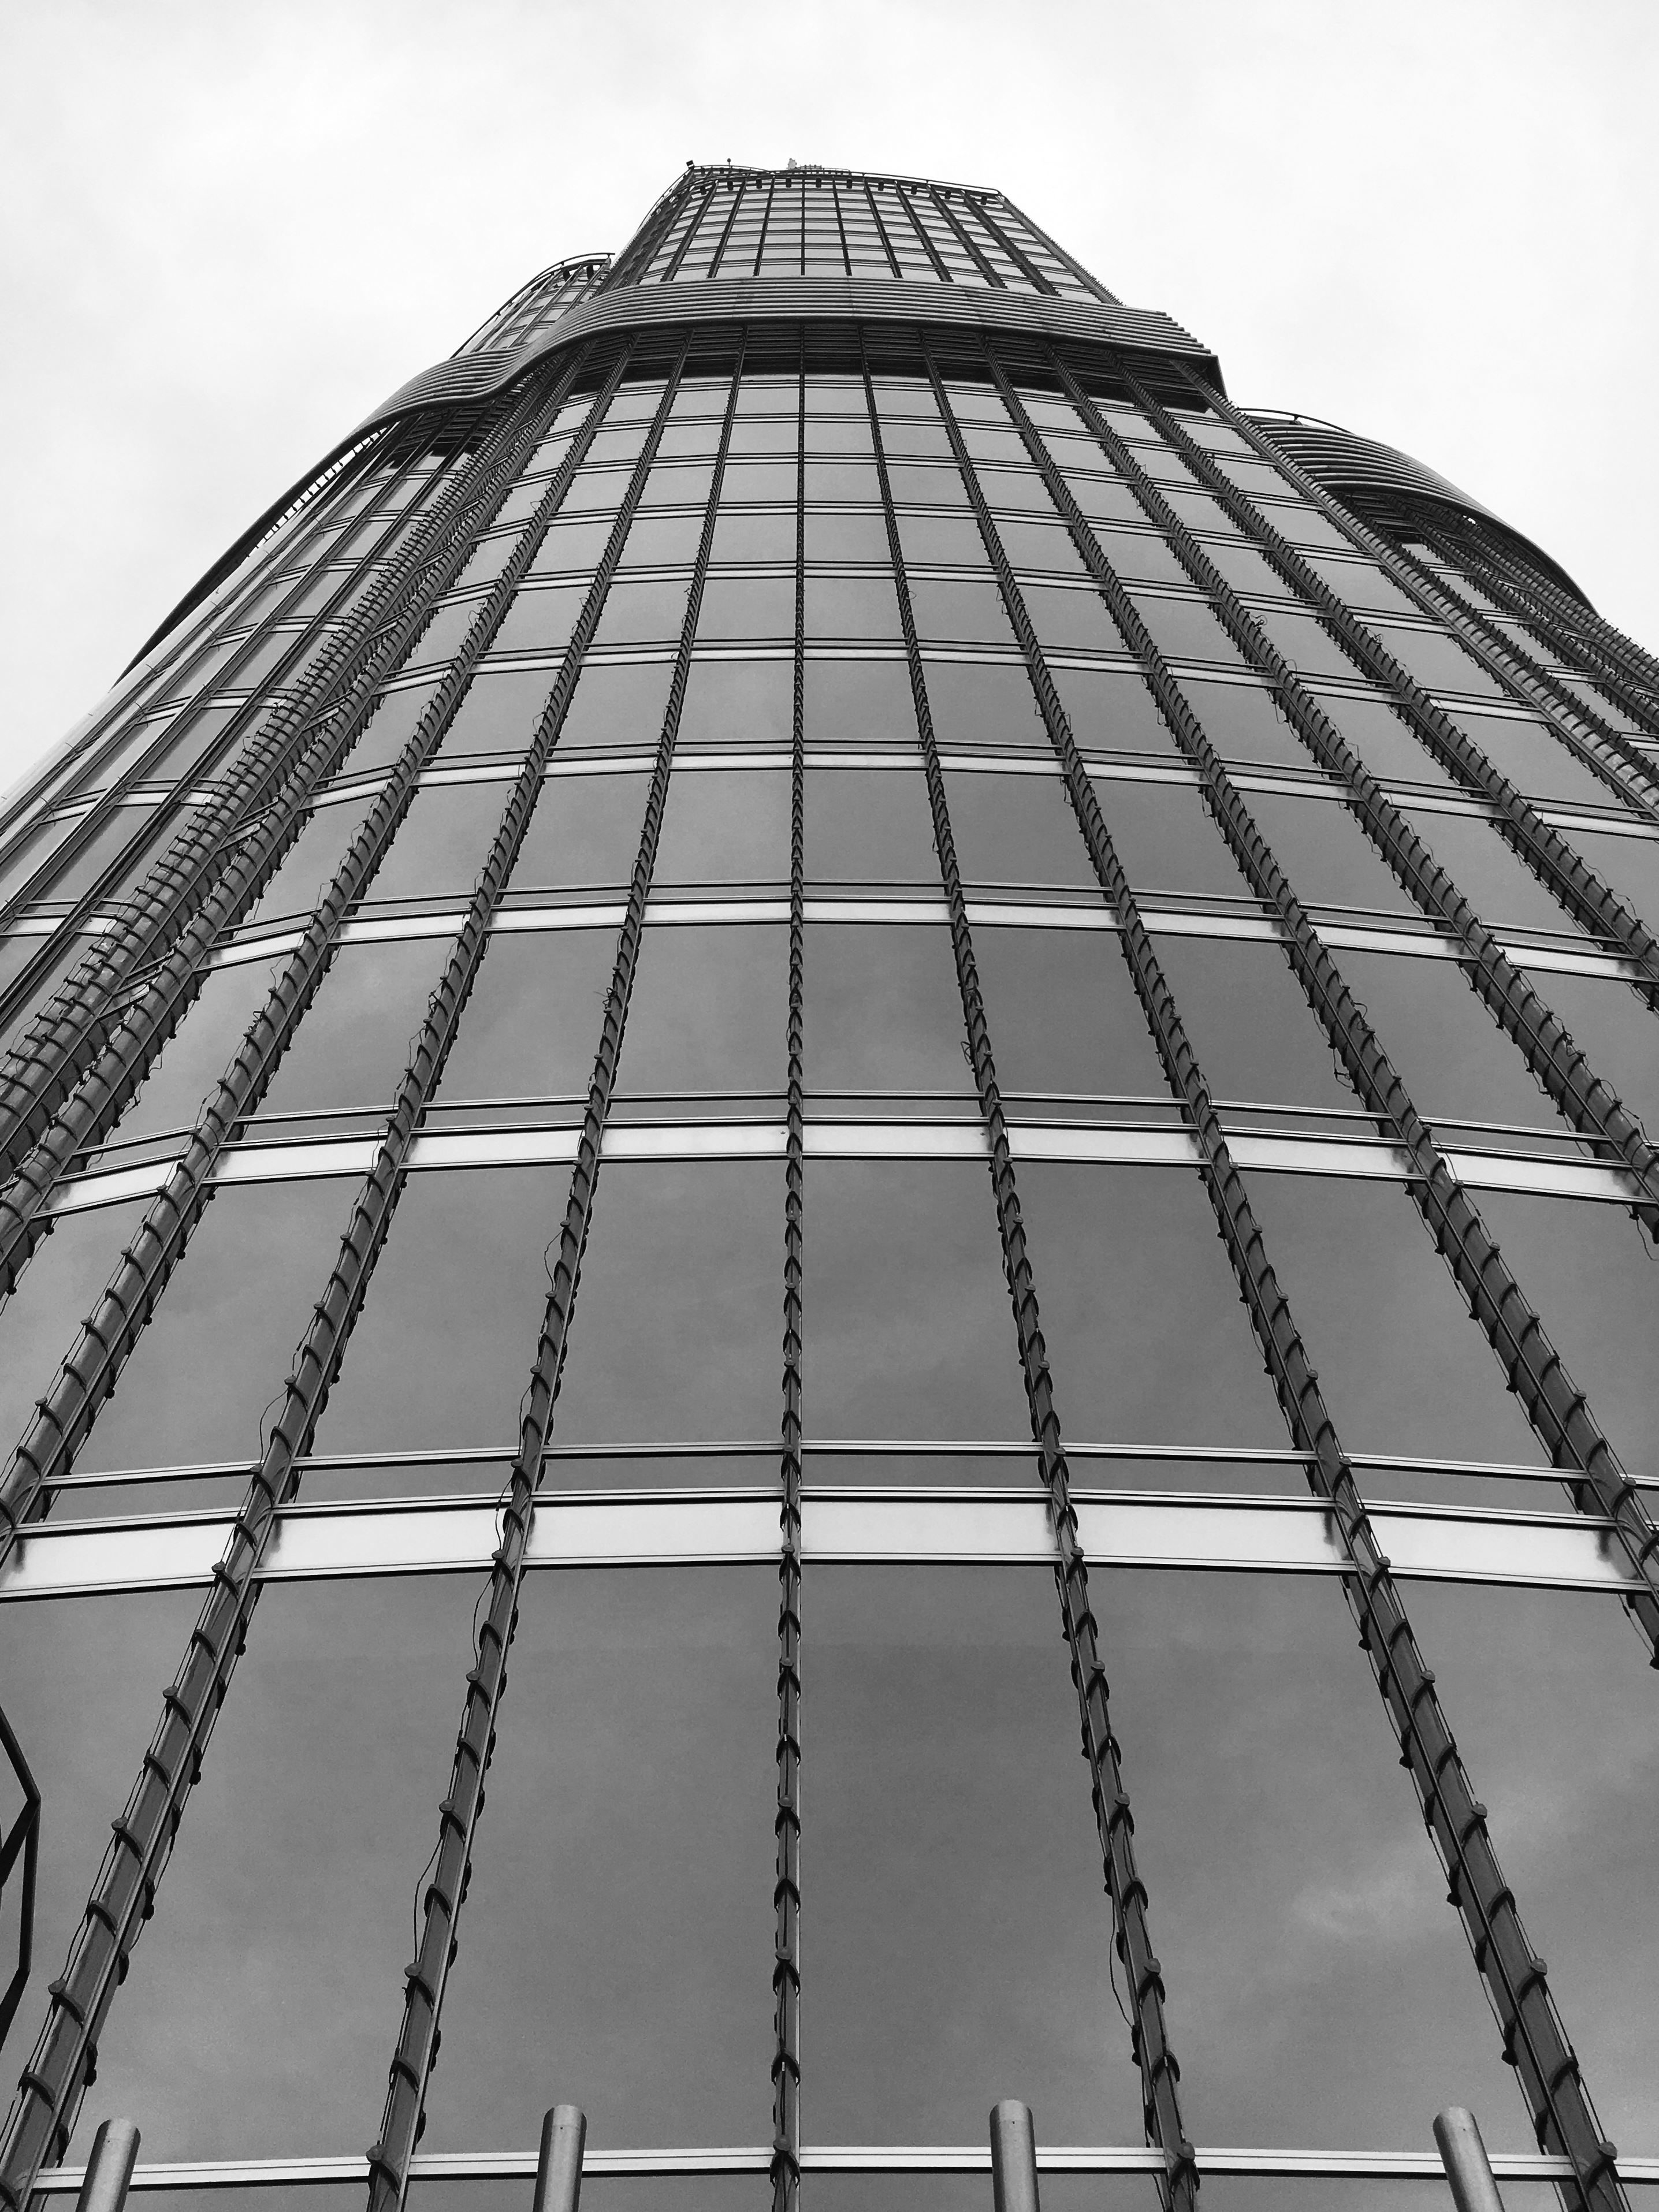 Free picture: building, tower, steel, tall, tallest ...